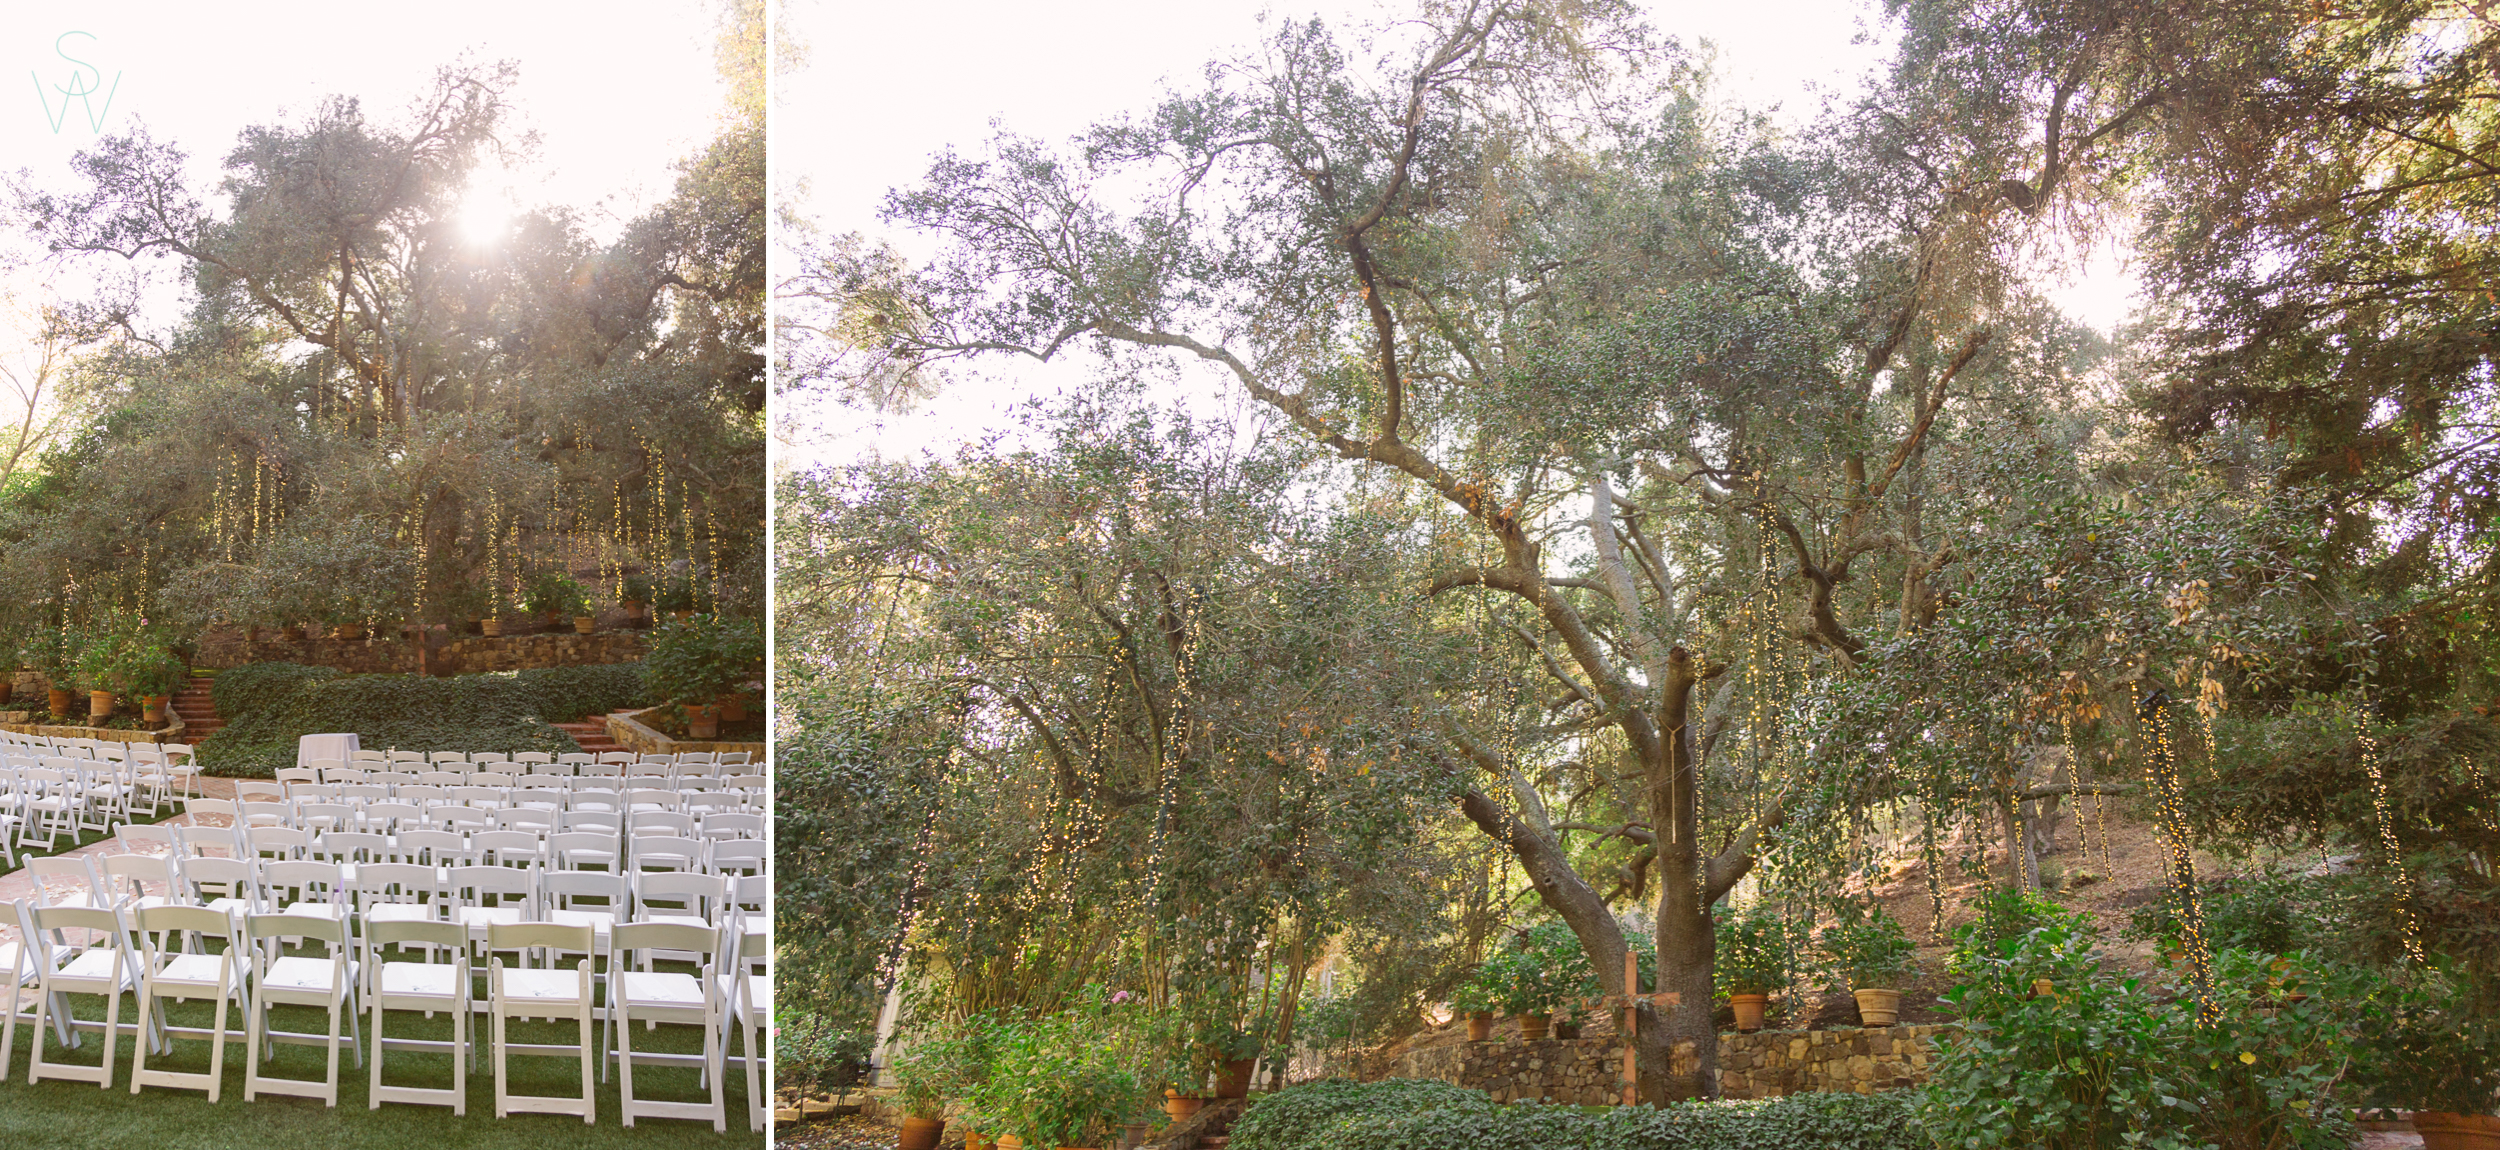 163Calamigos.ranch.shewanders.wedding.malibu.photography.JPG